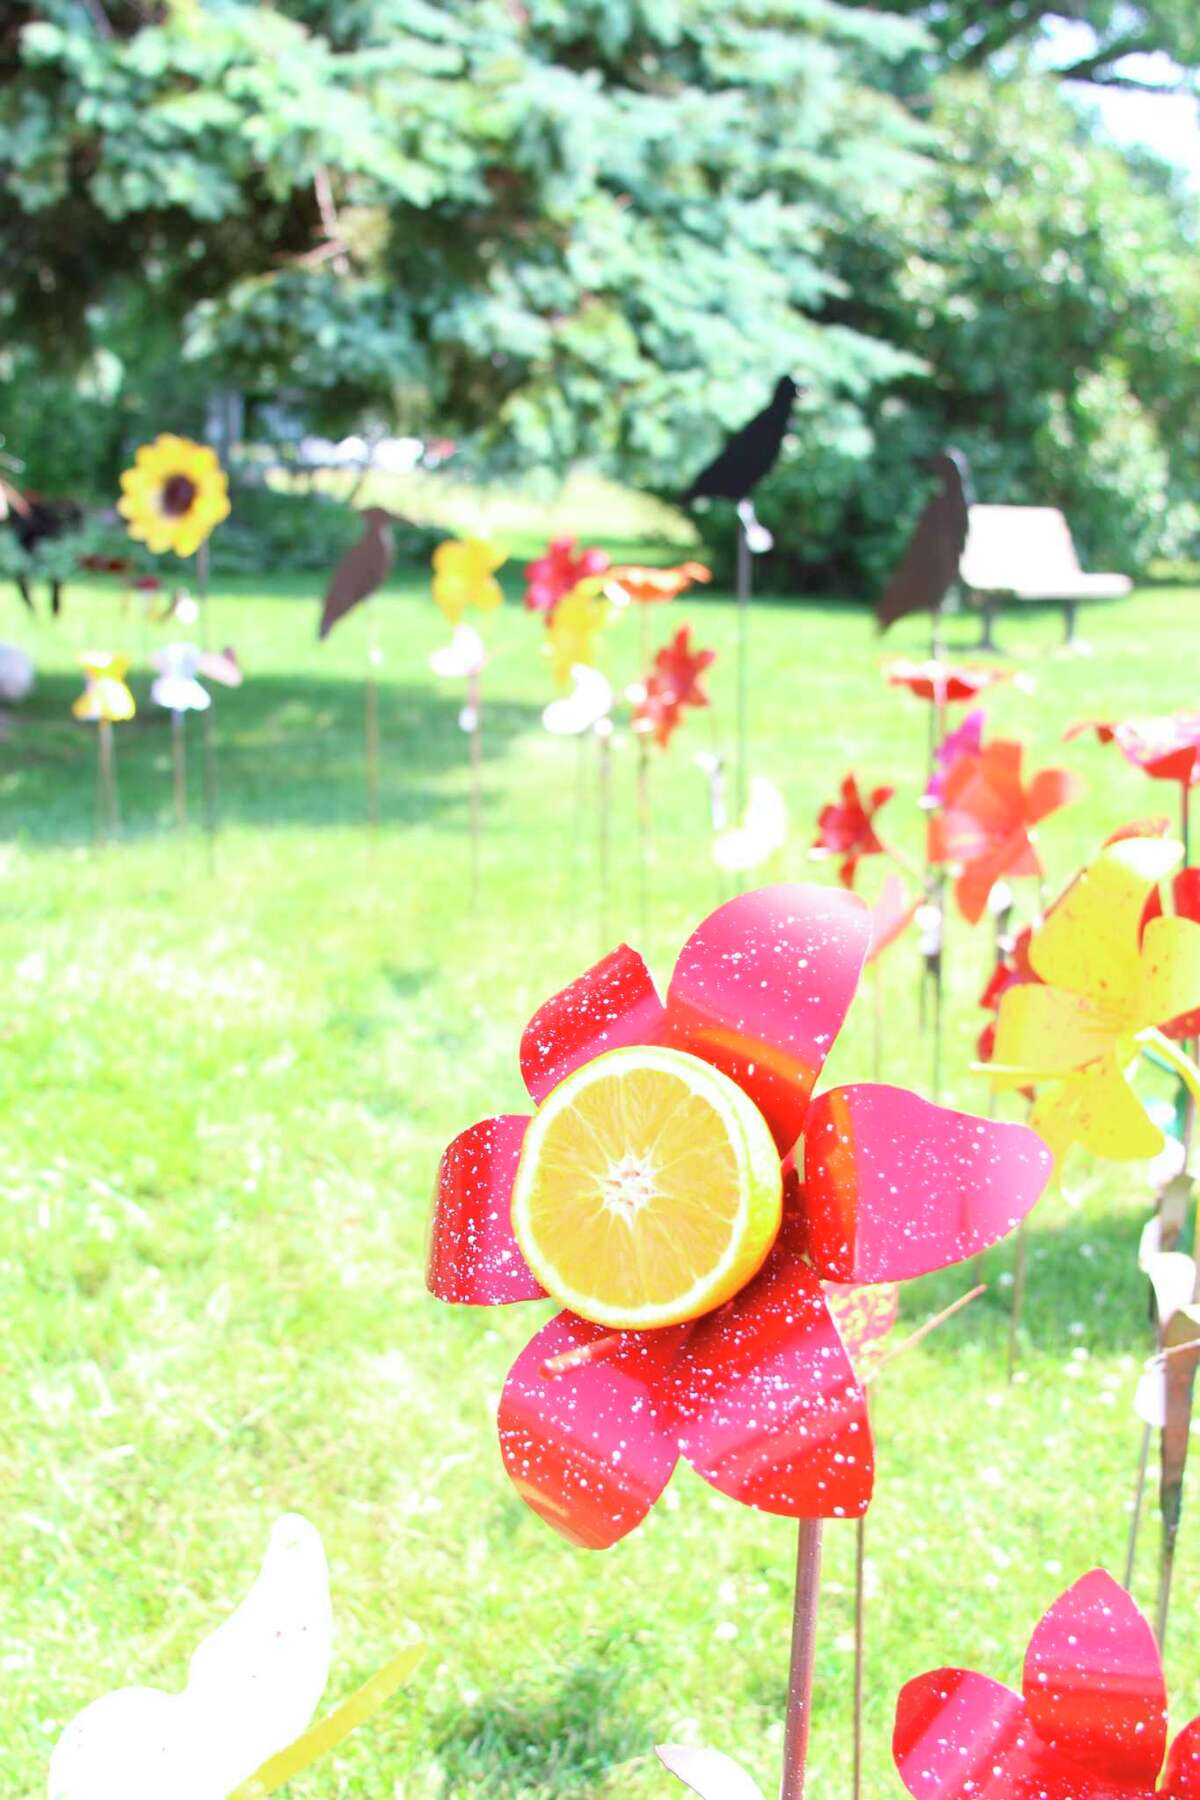 Art in the Park is coming to Mineral Springs Park in Frankfort on July 4. (File Photo)